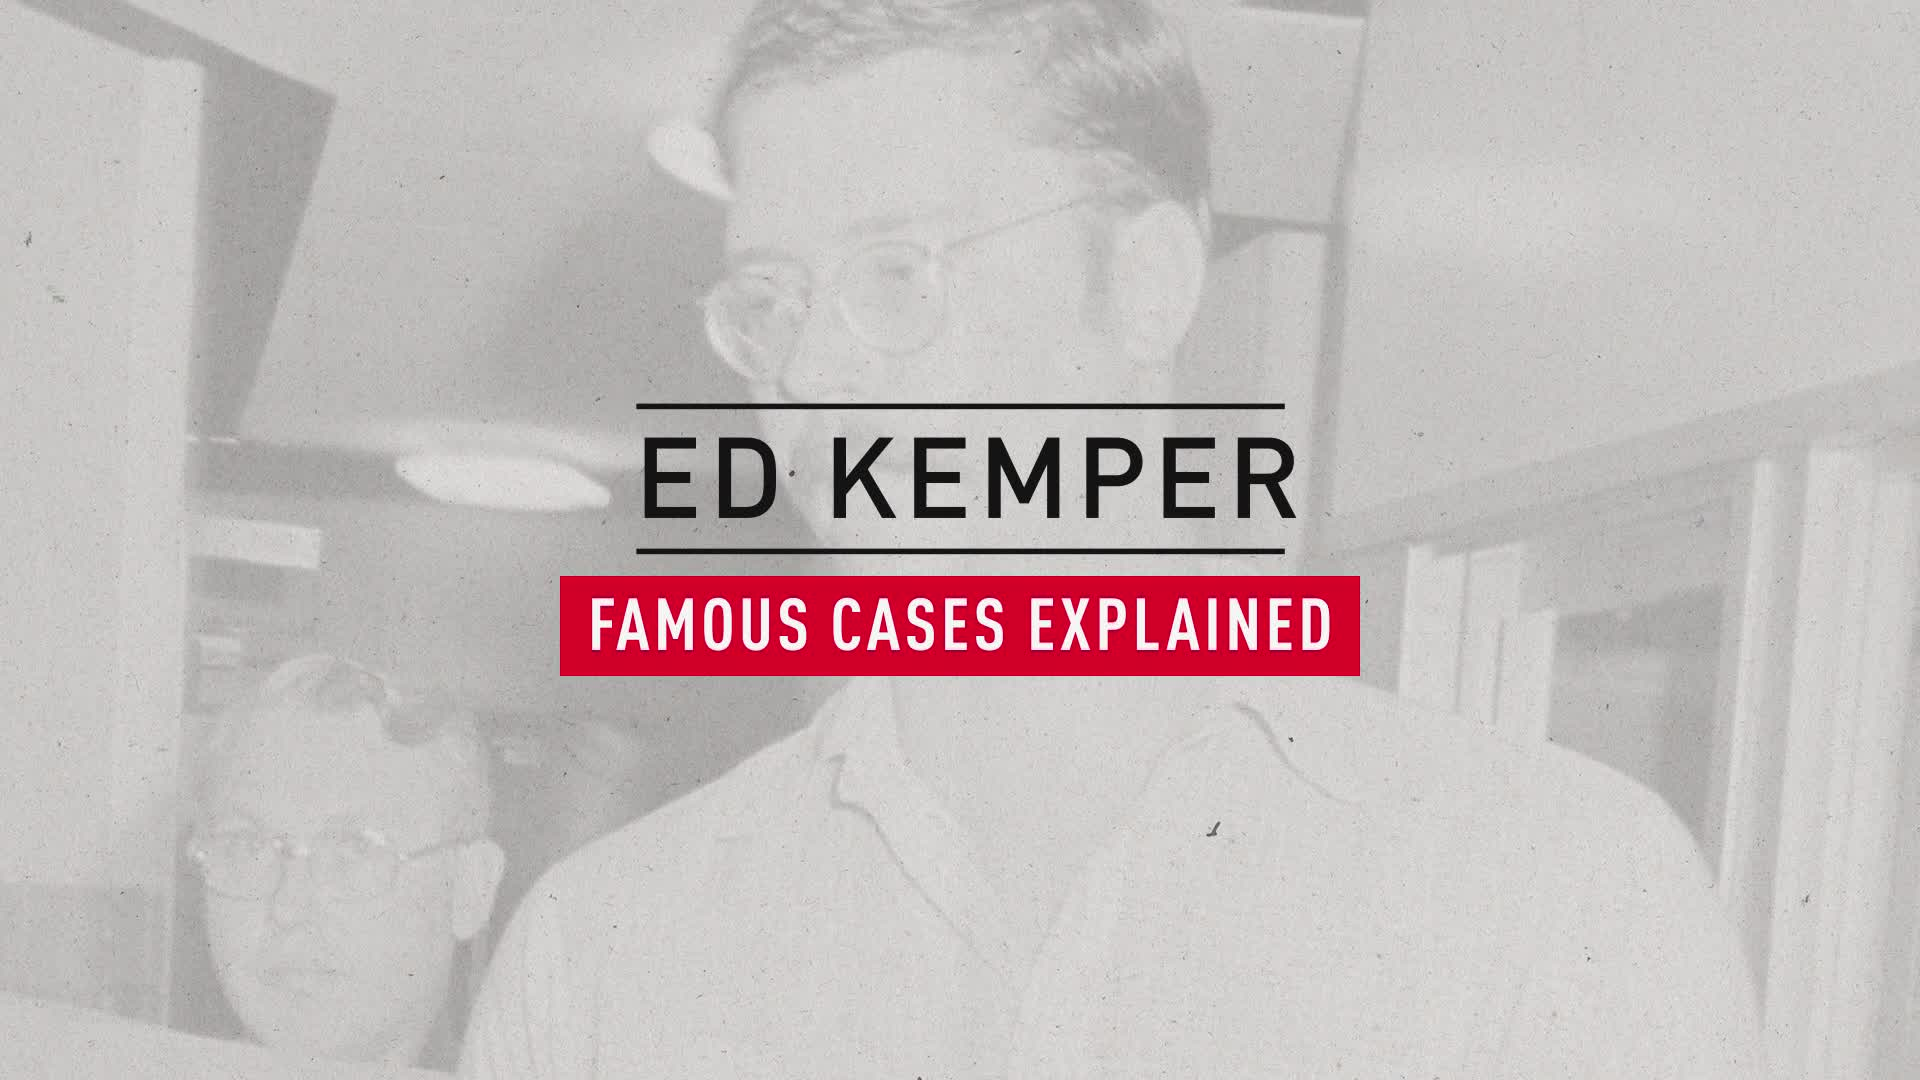 The Ed Kemper Case, Explained